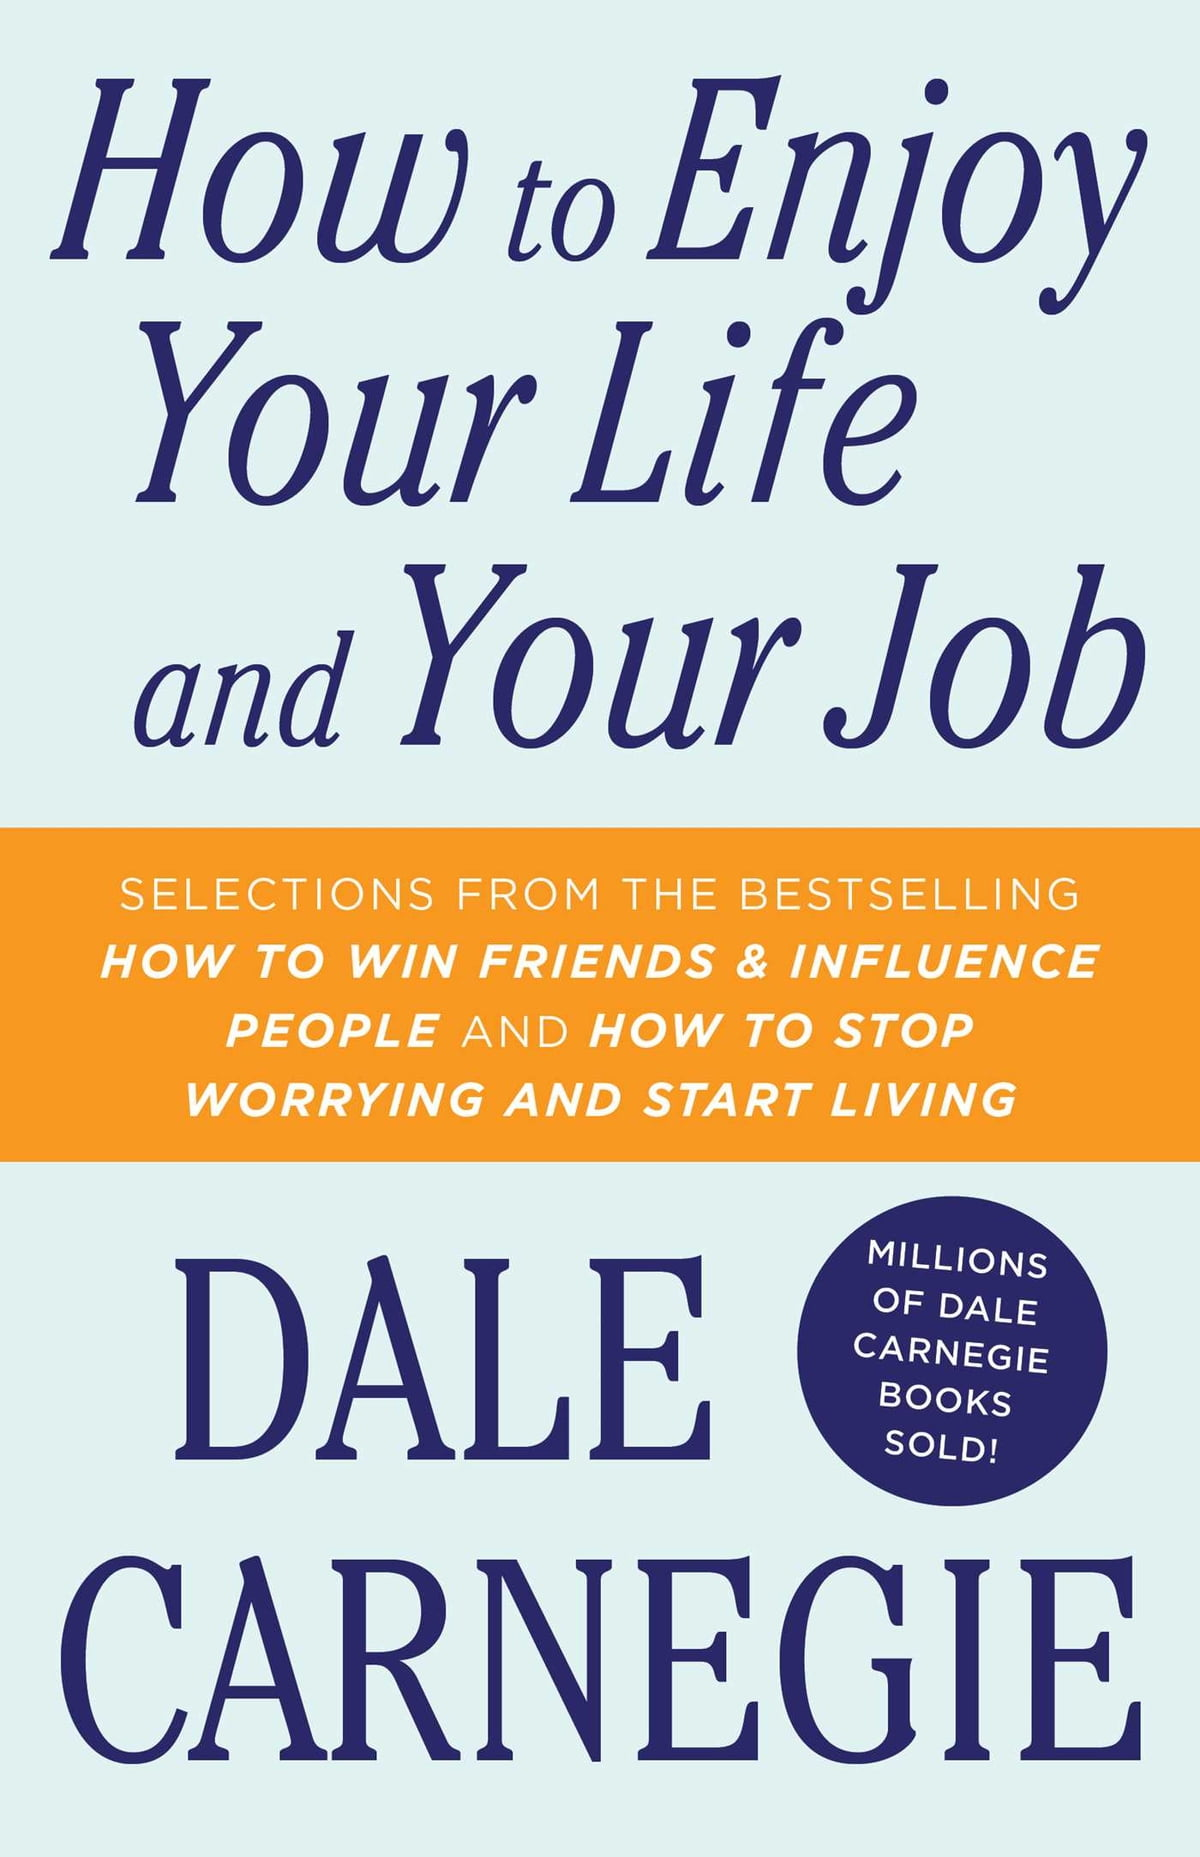 How To Enjoy Your Life And Your Job eBook by Dale Carnegie - 9781451621730  | Rakuten Kobo